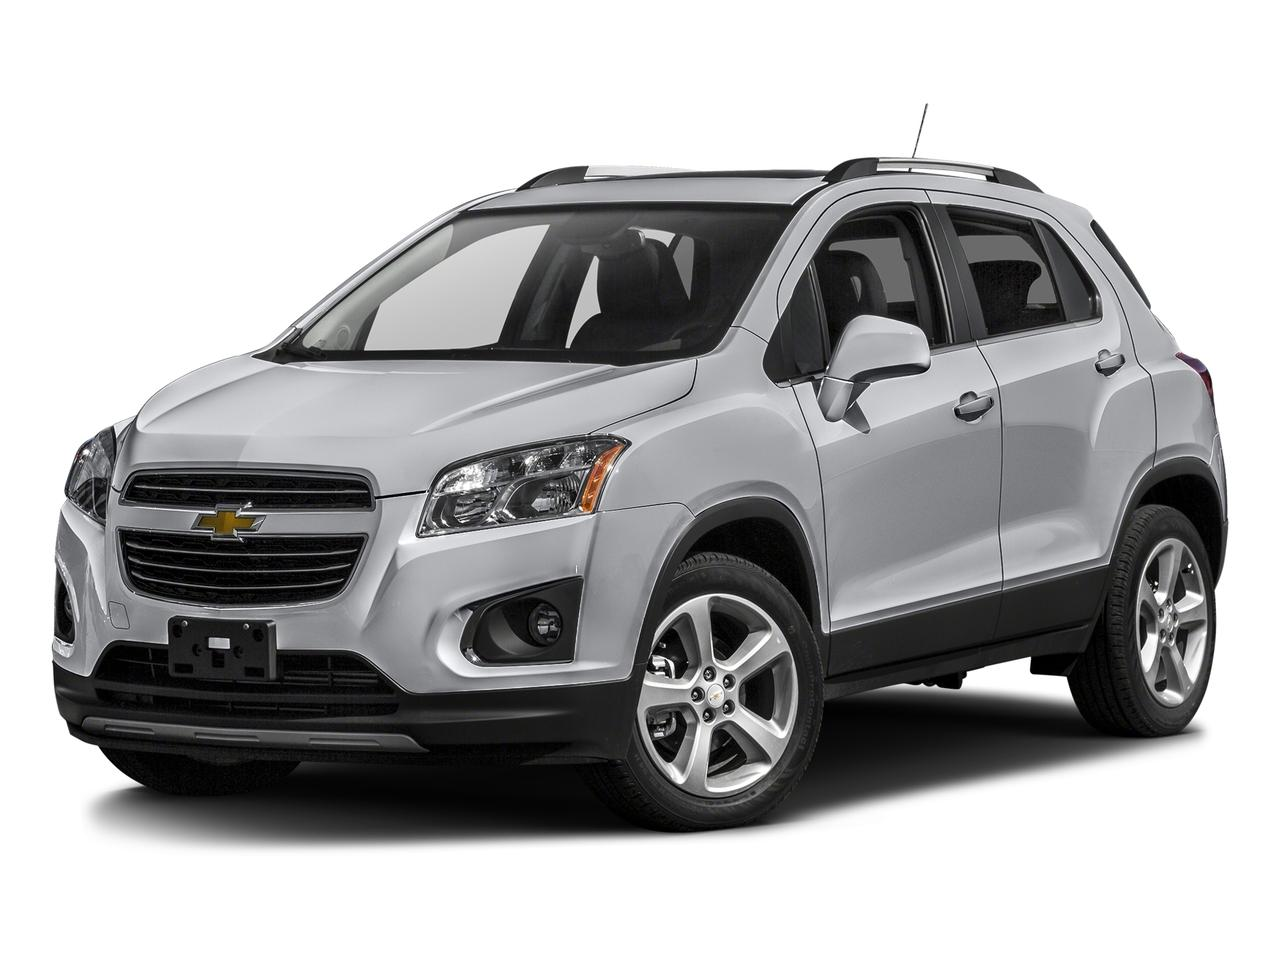 2016 Chevrolet Trax Vehicle Photo in Plainfield, IL 60586